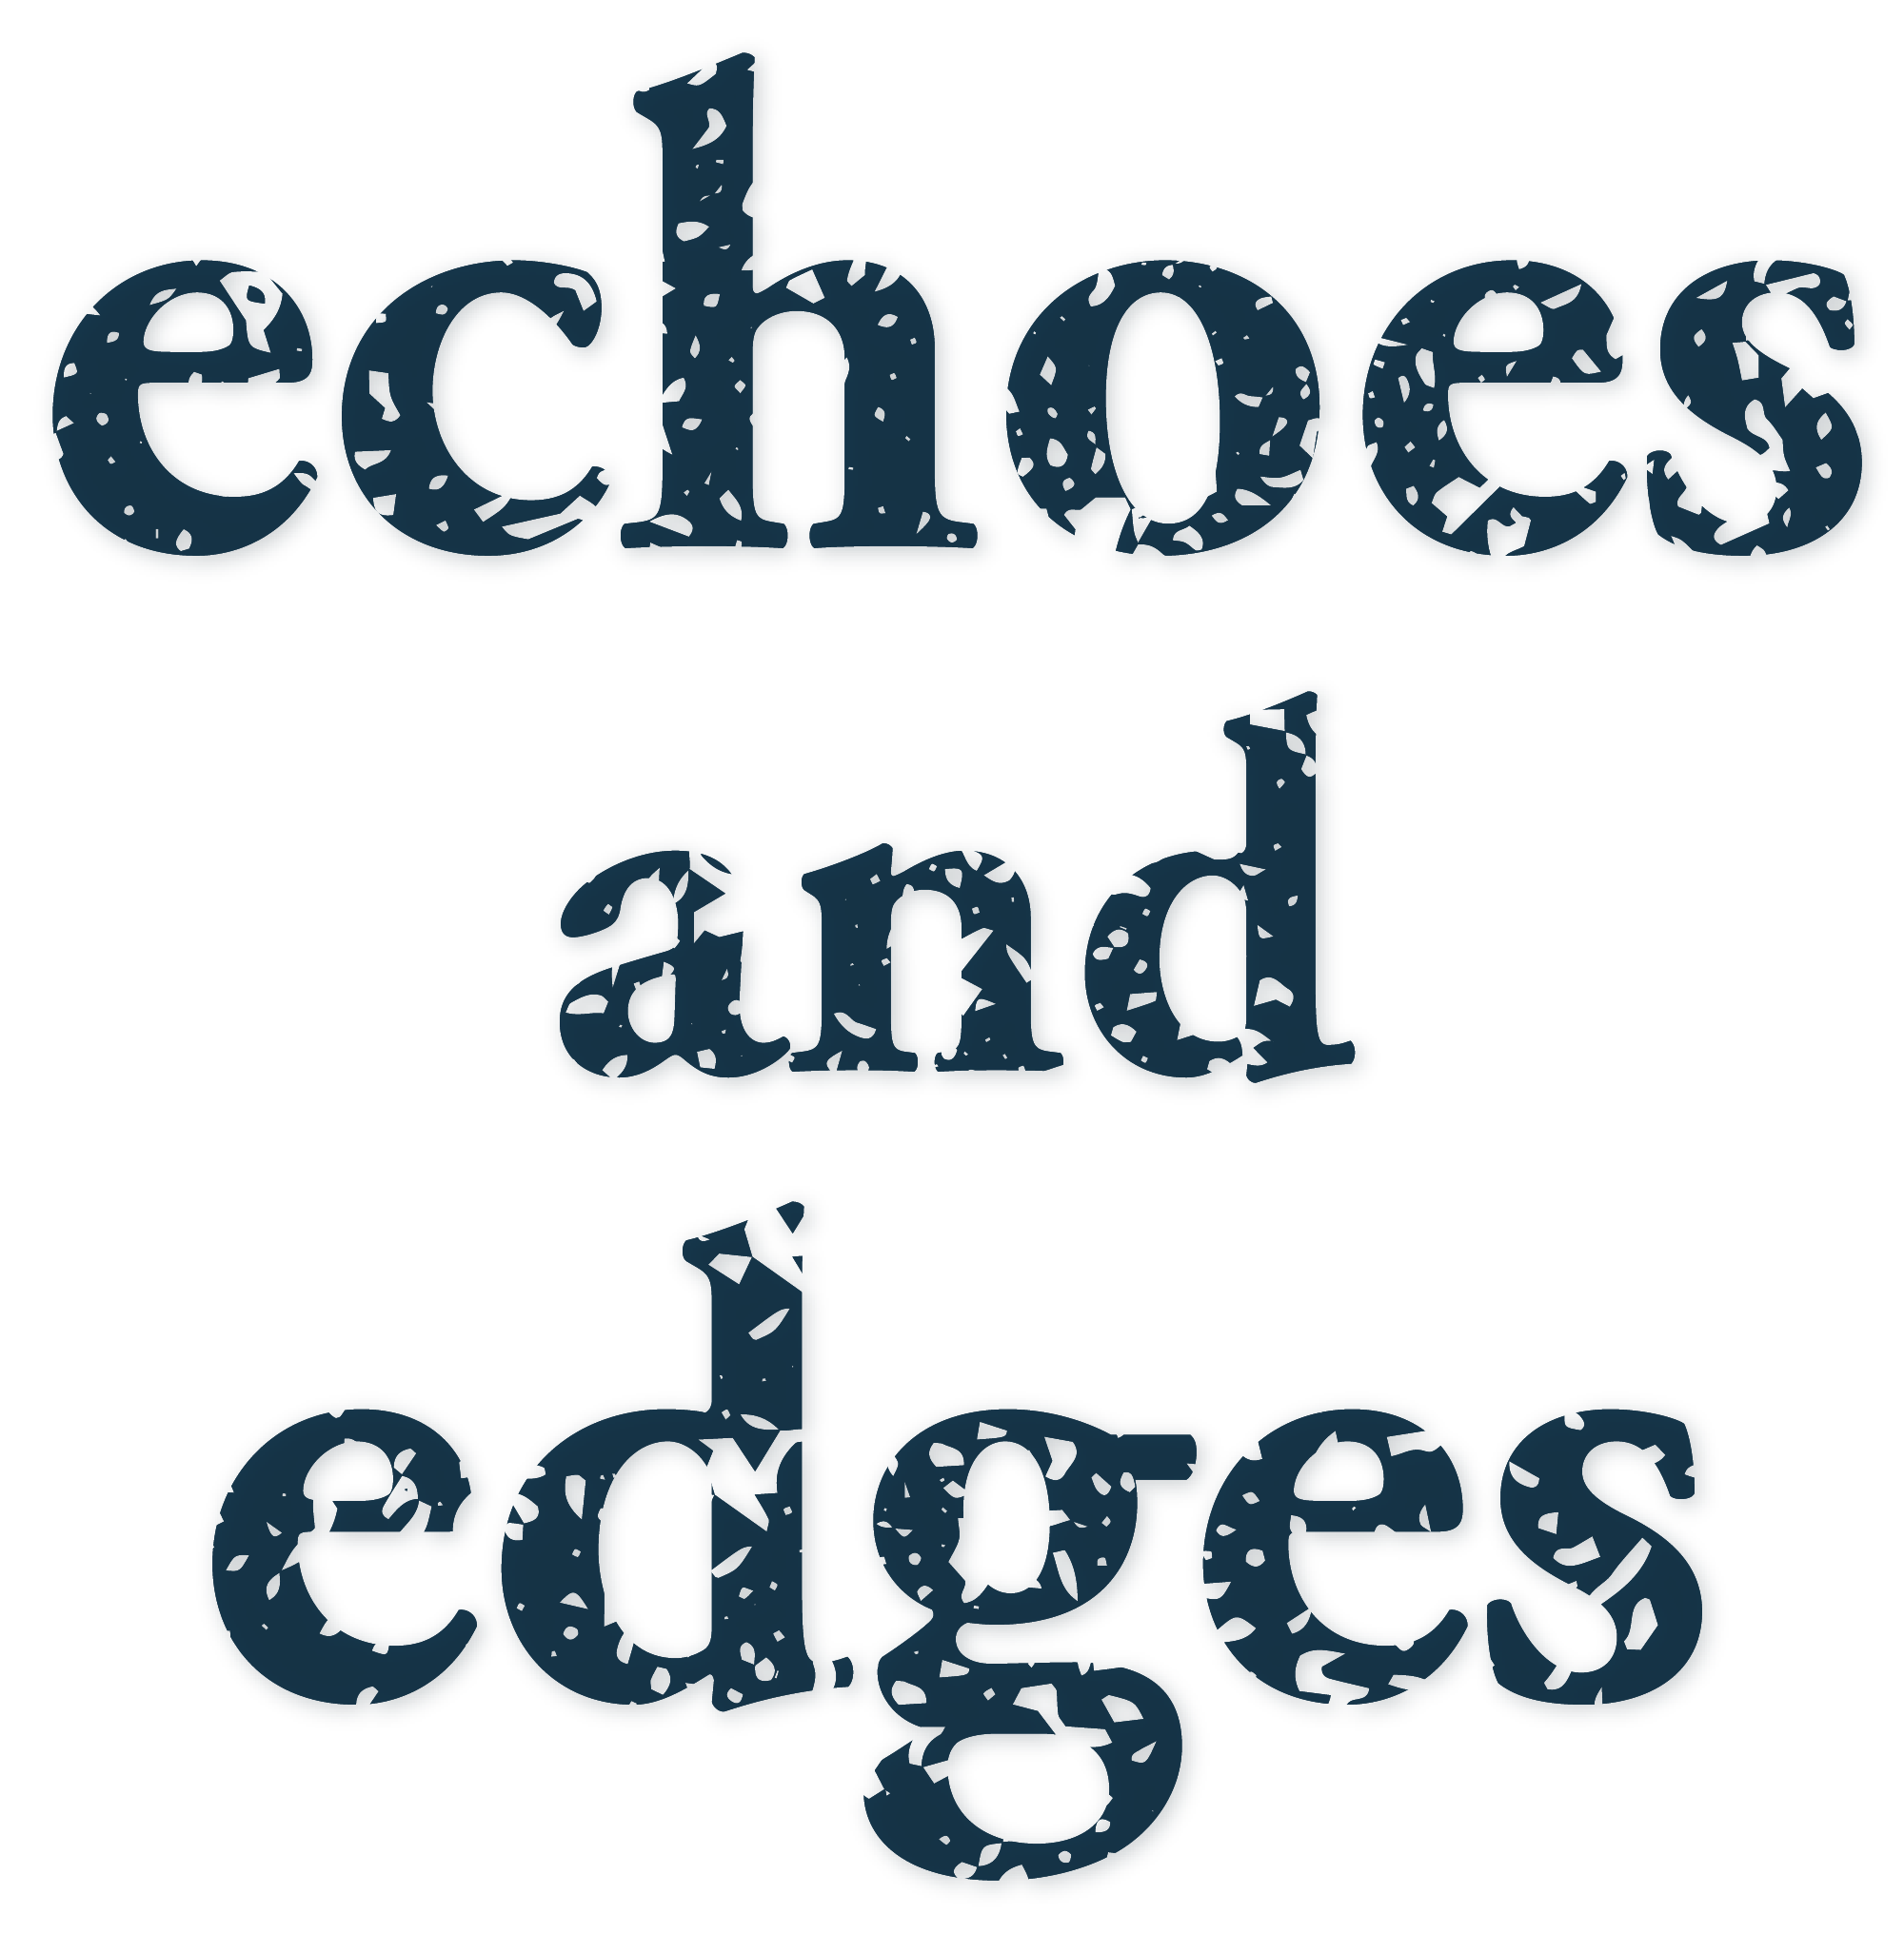 Echoes and Edges   Logo square transparent png